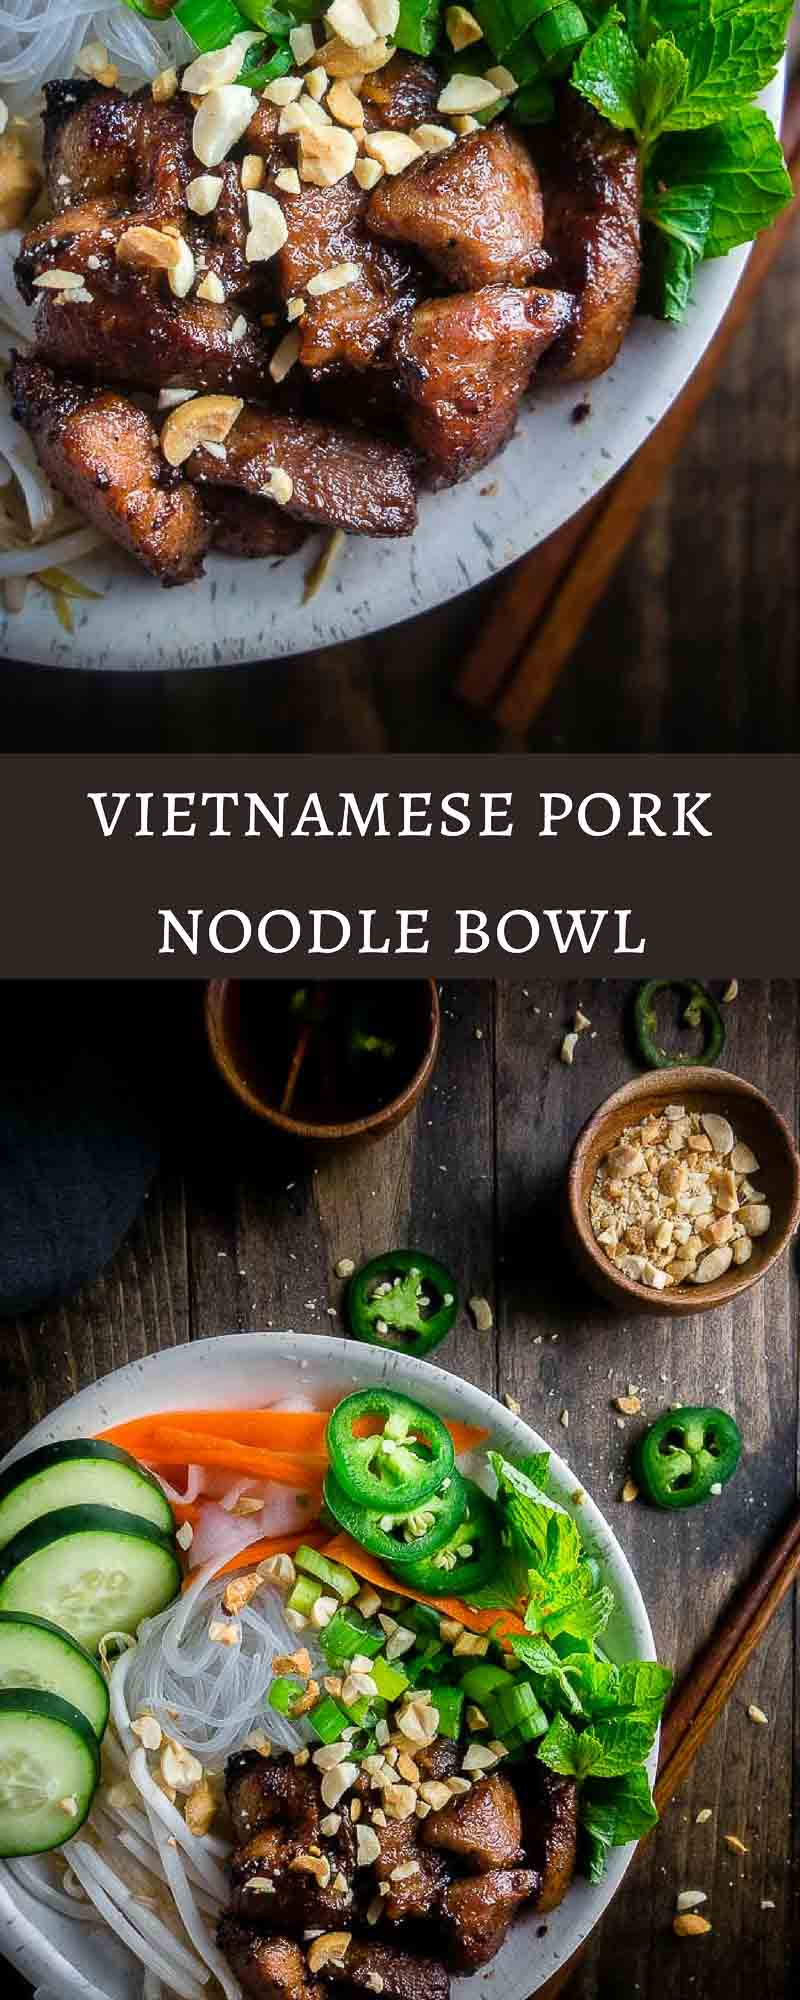 Tender pieces of marinated pork, stir fried until crisp on a bed of rice noodles, bean sprouts, and fresh herbs and served with Vietnamese dipping sauce (nuoc cham), this Vietnamese Pork Noodle Bowl is delicious and super easy to make. bun thit nuong | easy pork noodle bowl | healthy pork noodle bowl | vietnamese pork | vermicelli bowl | vietnamese pork vermicelli | caramelized pork noodle bowl | lemongrass pork noodle bowl | quick vietnamese noodle bowls